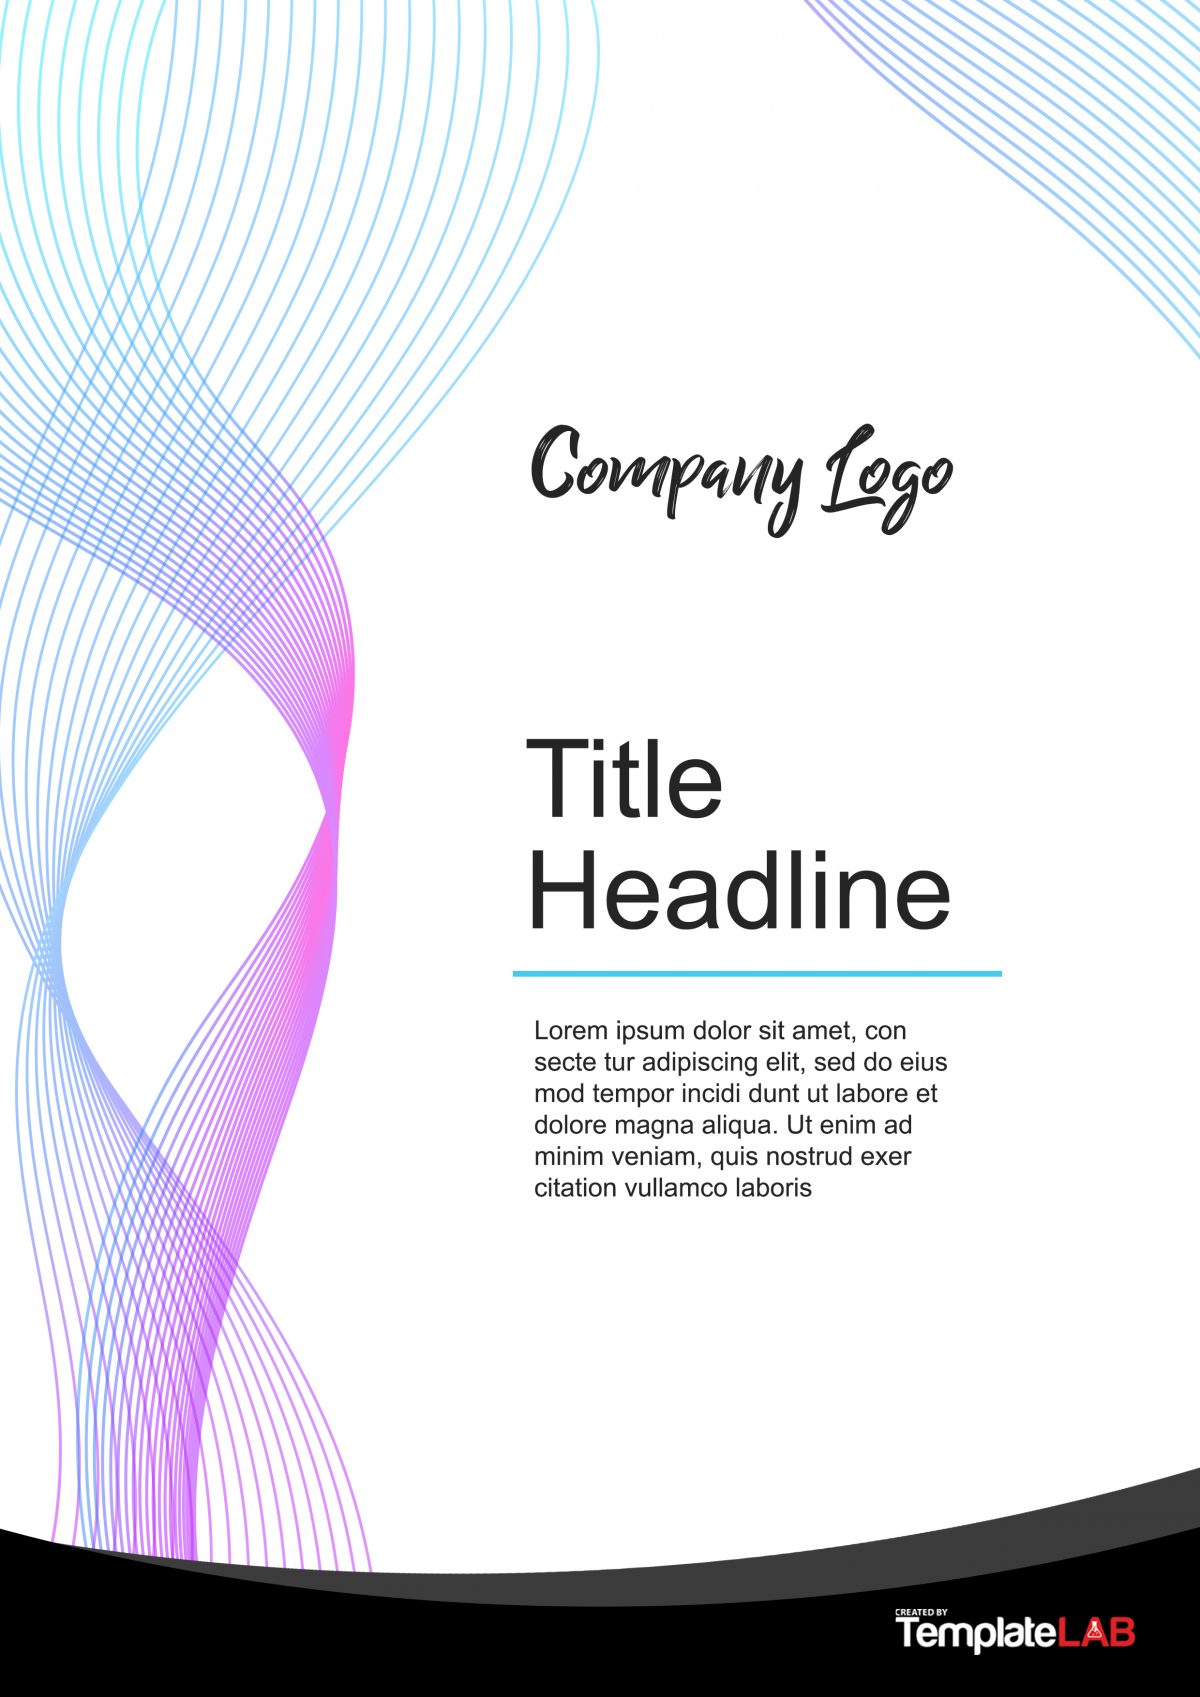 Free Cover Page Template 4 - TemplateLab